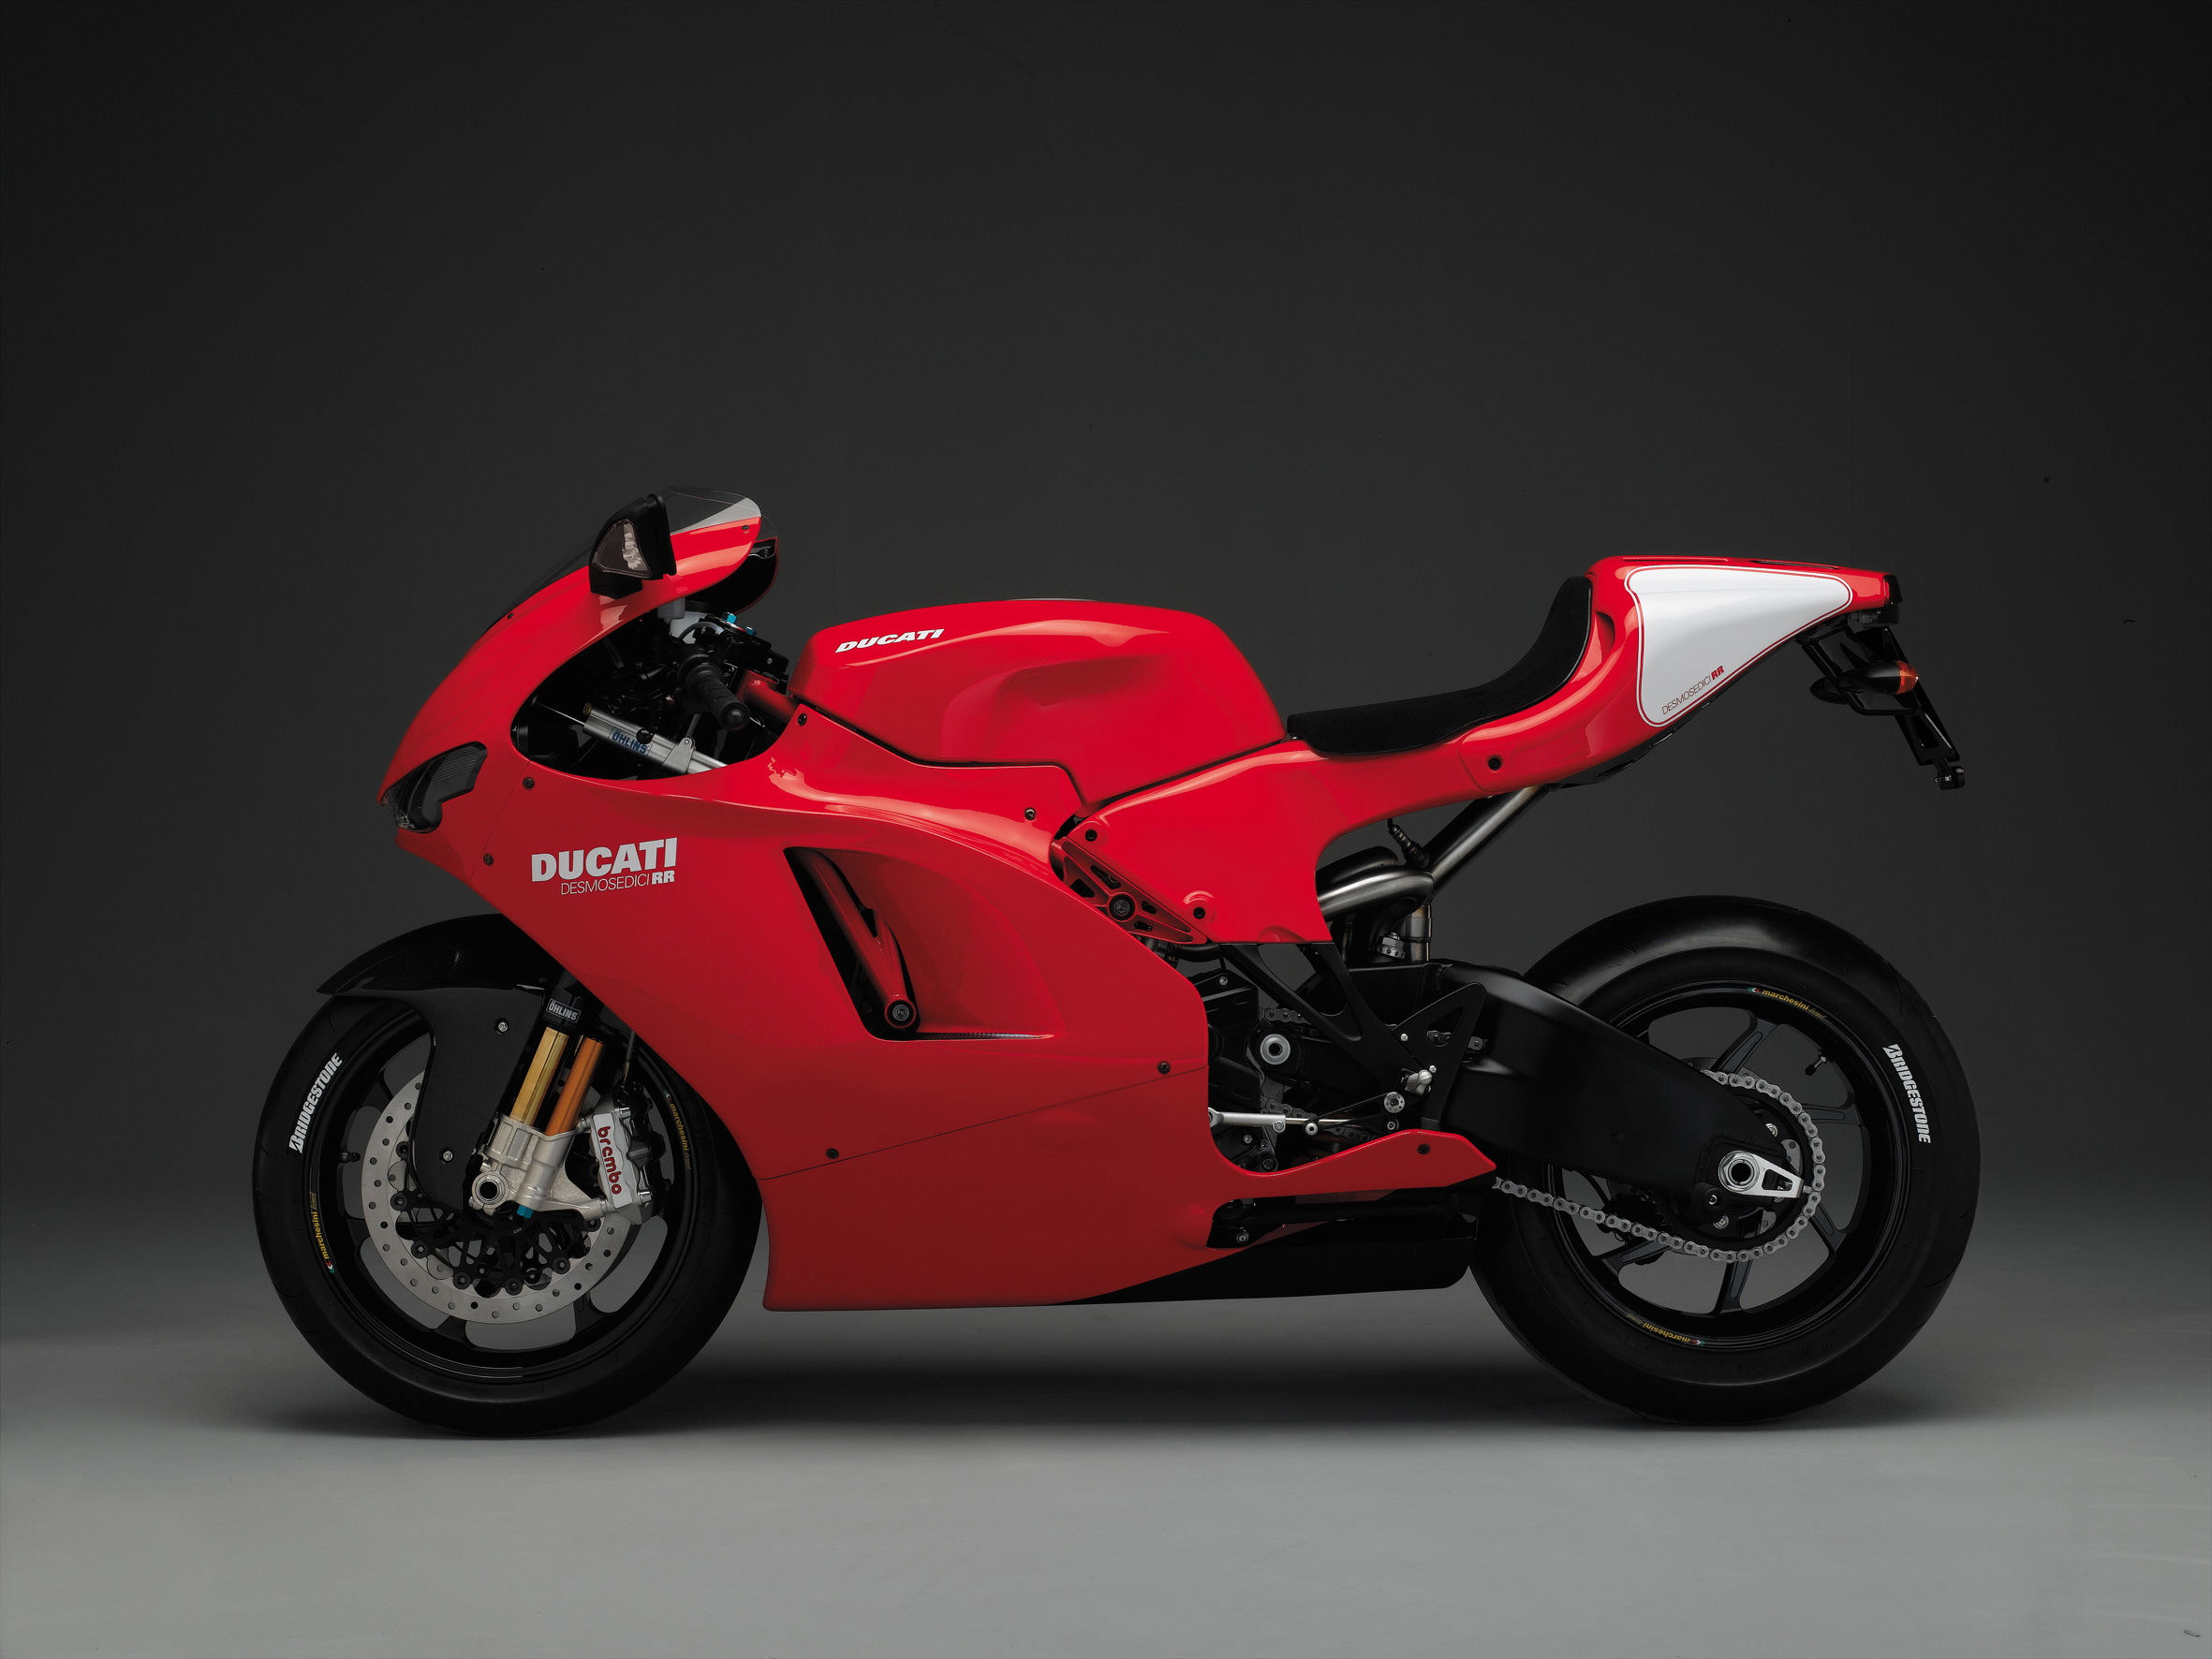 Ducati V4 Superbike to Debut in September? - Asphalt & Rubber